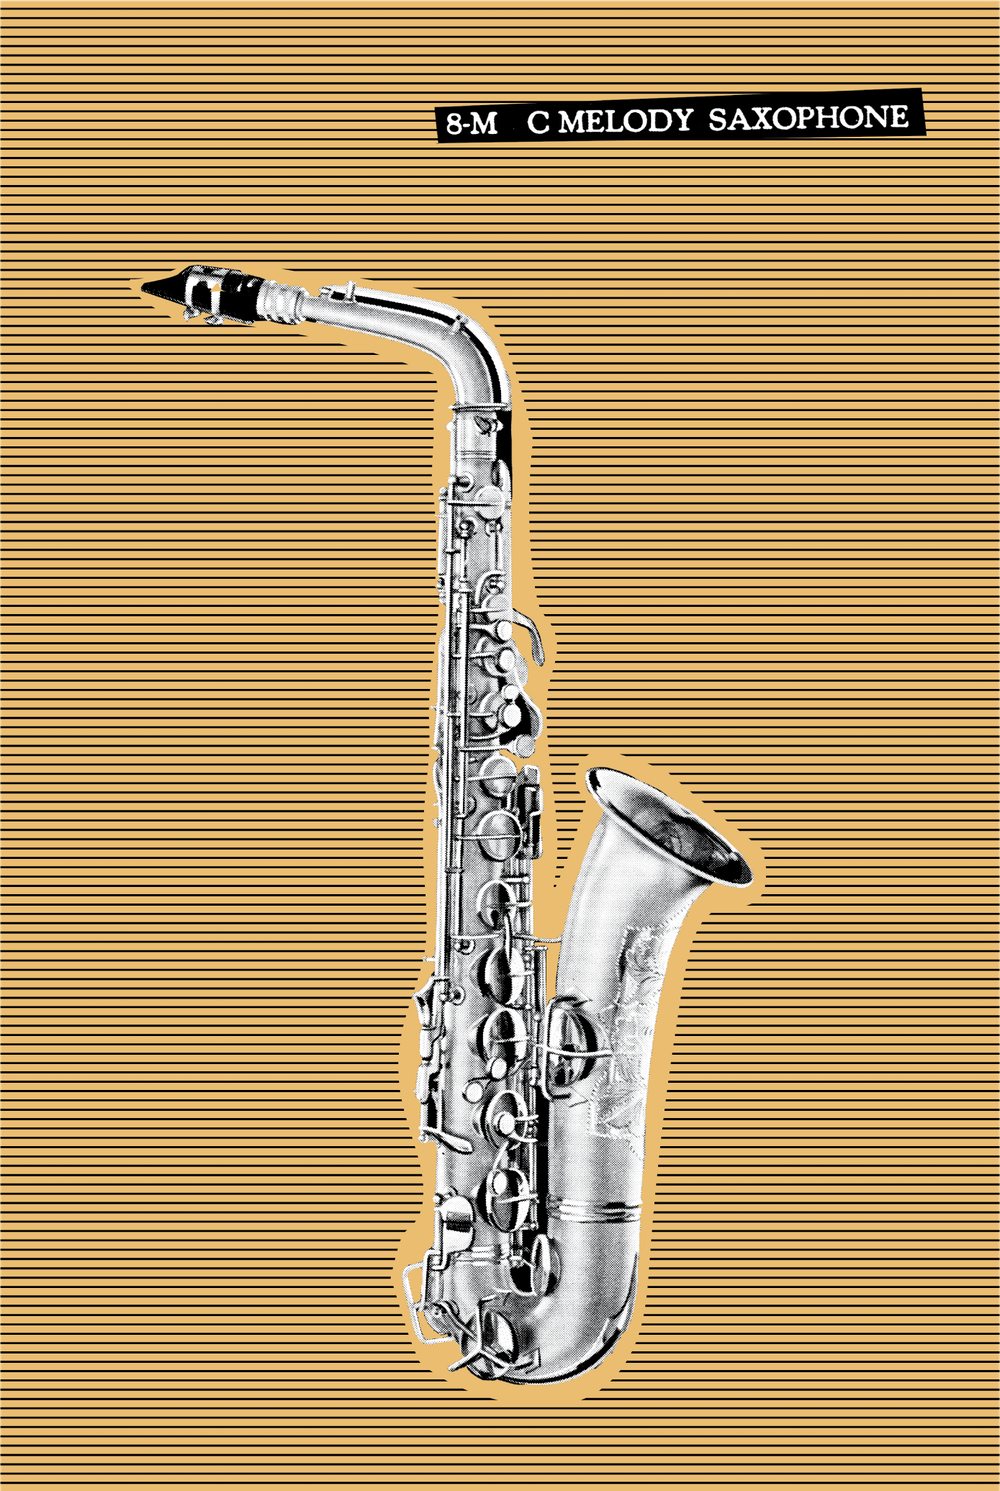 In the '20s and '30s the C Melody Saxophone was a popular parlor instrument.